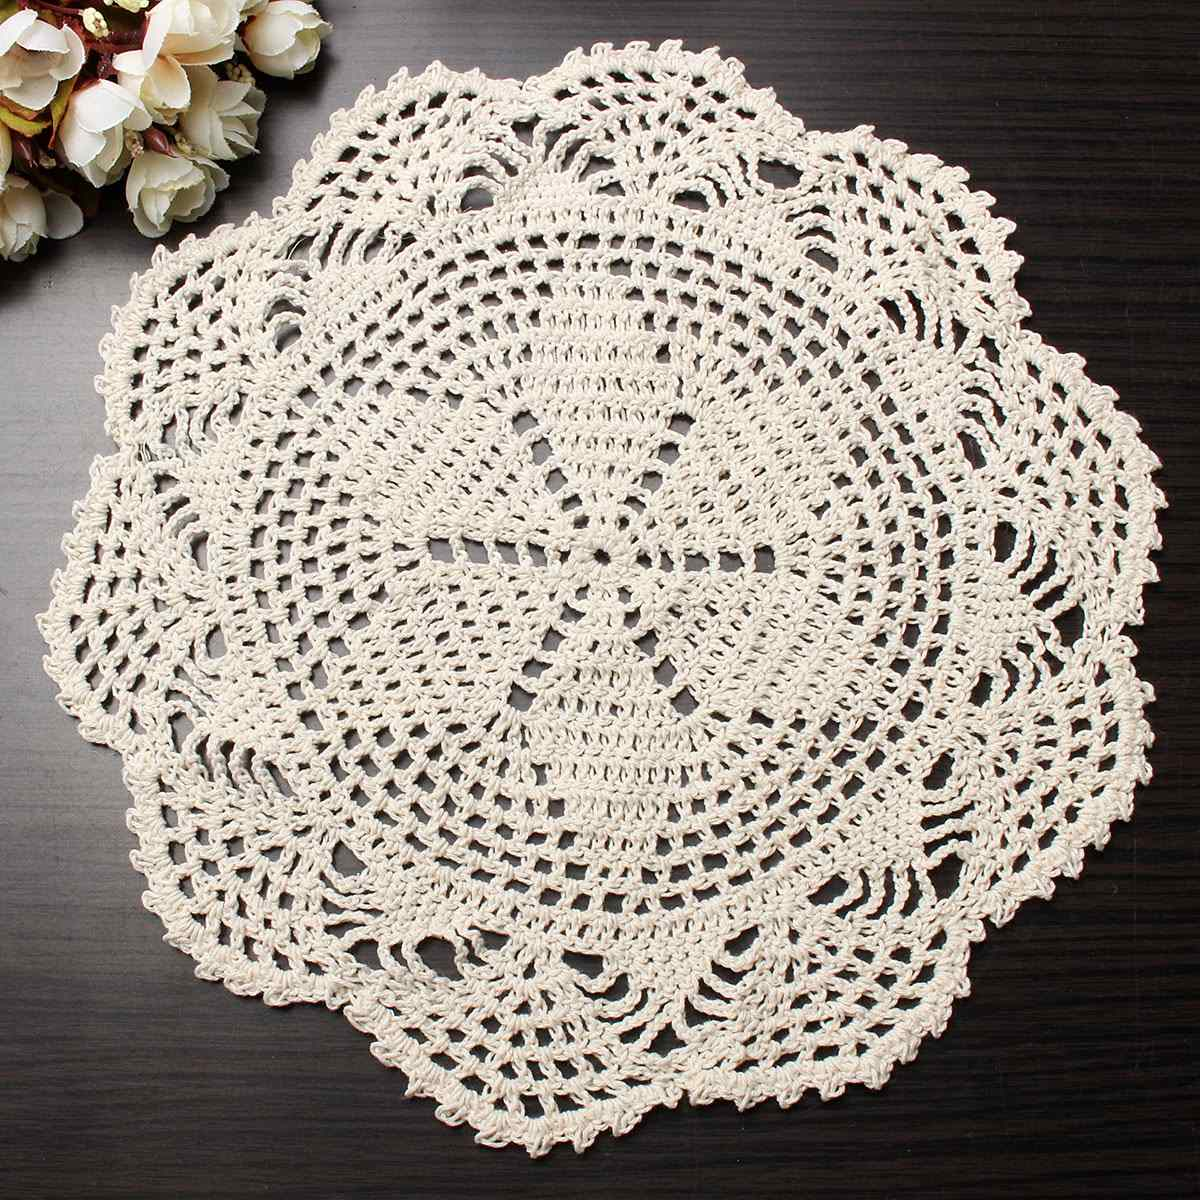 28CM Vintage Beige Crochet Lace Doily Cotton Yarn Handmade Flower Placemat Round Doilies For Wedding Home Table Decoration(China (Mainland))